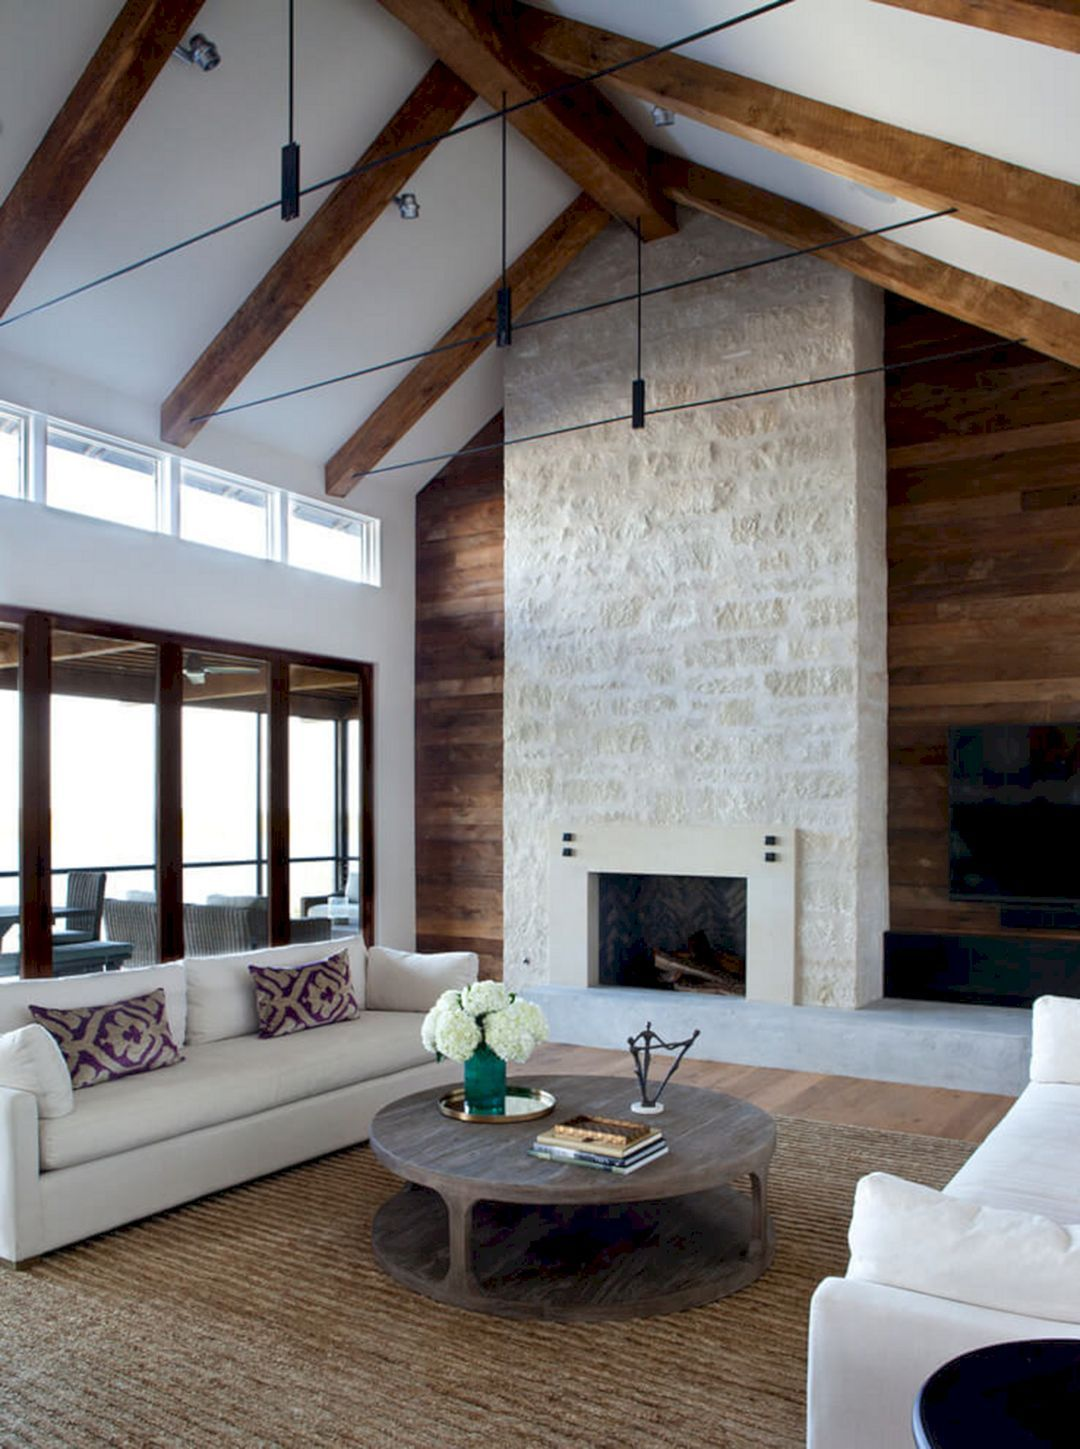 25 Marvelous Lake House Decorating Ideas You Should Try With